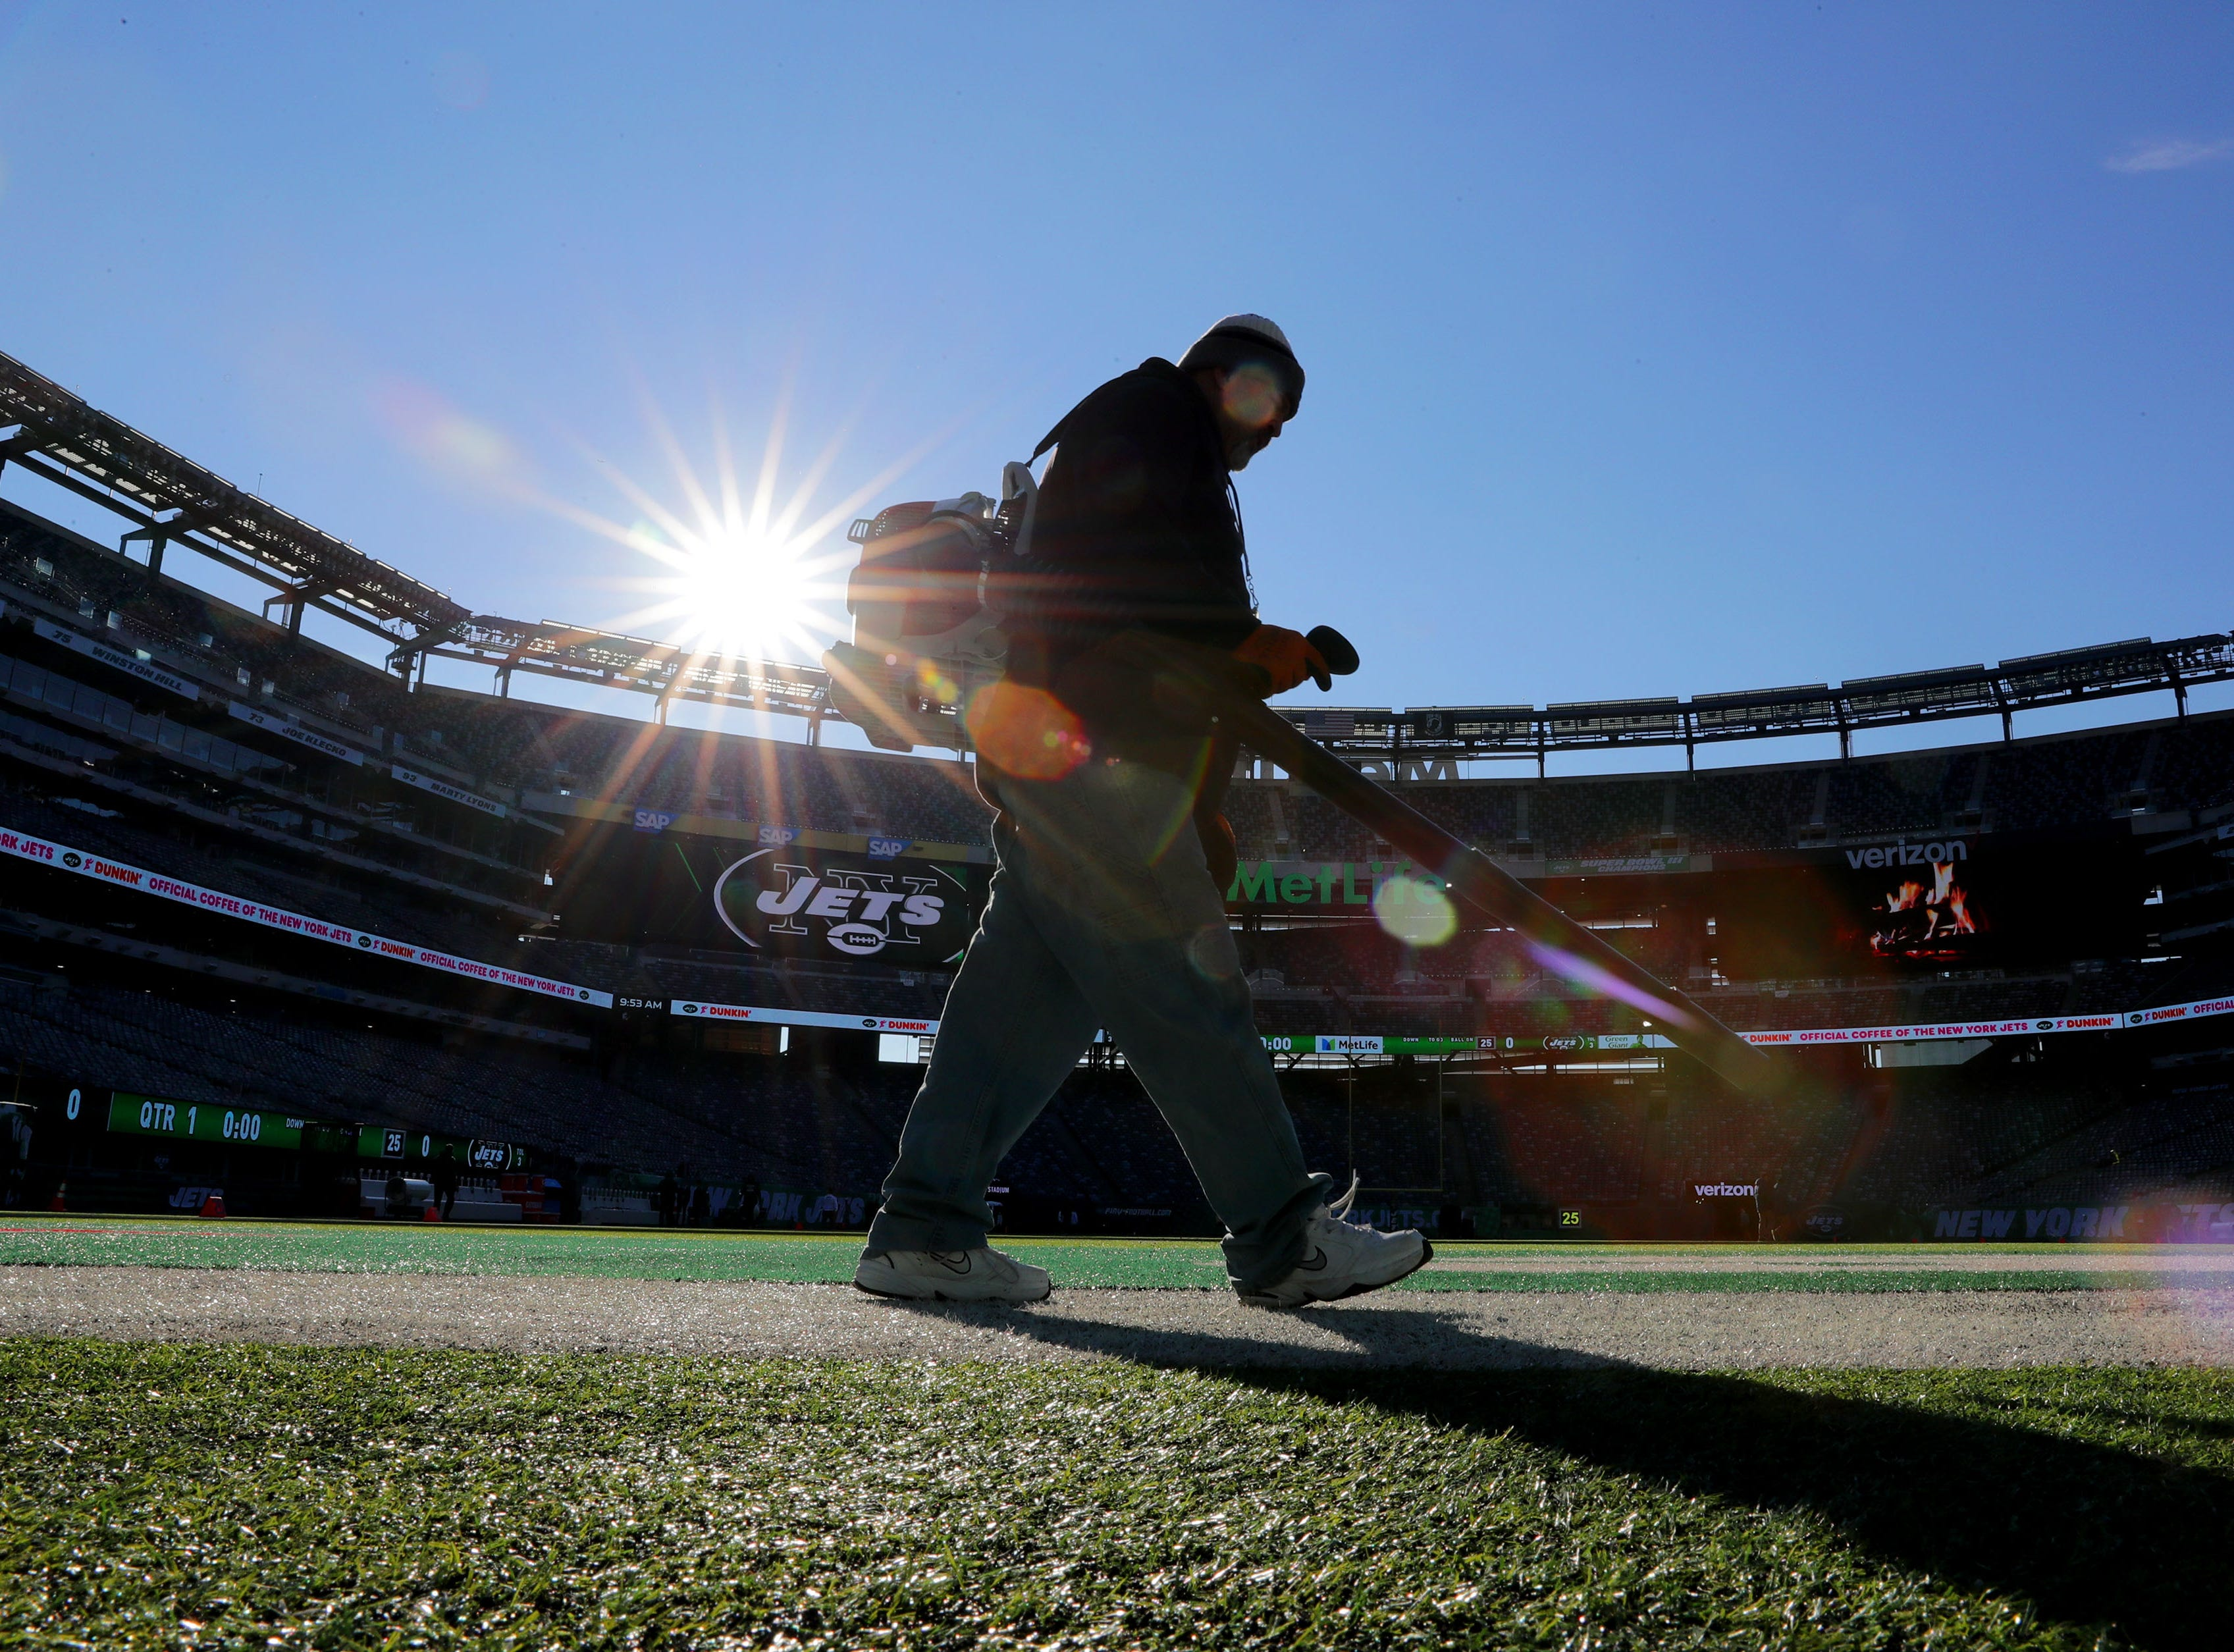 A member of the New York Jets  grounds crew blows off the artificial turf before the Green Bay Packers game against the New York Jets at MetLife Stadium Sunday, Dec. 23, 2018, in East Rutherford.